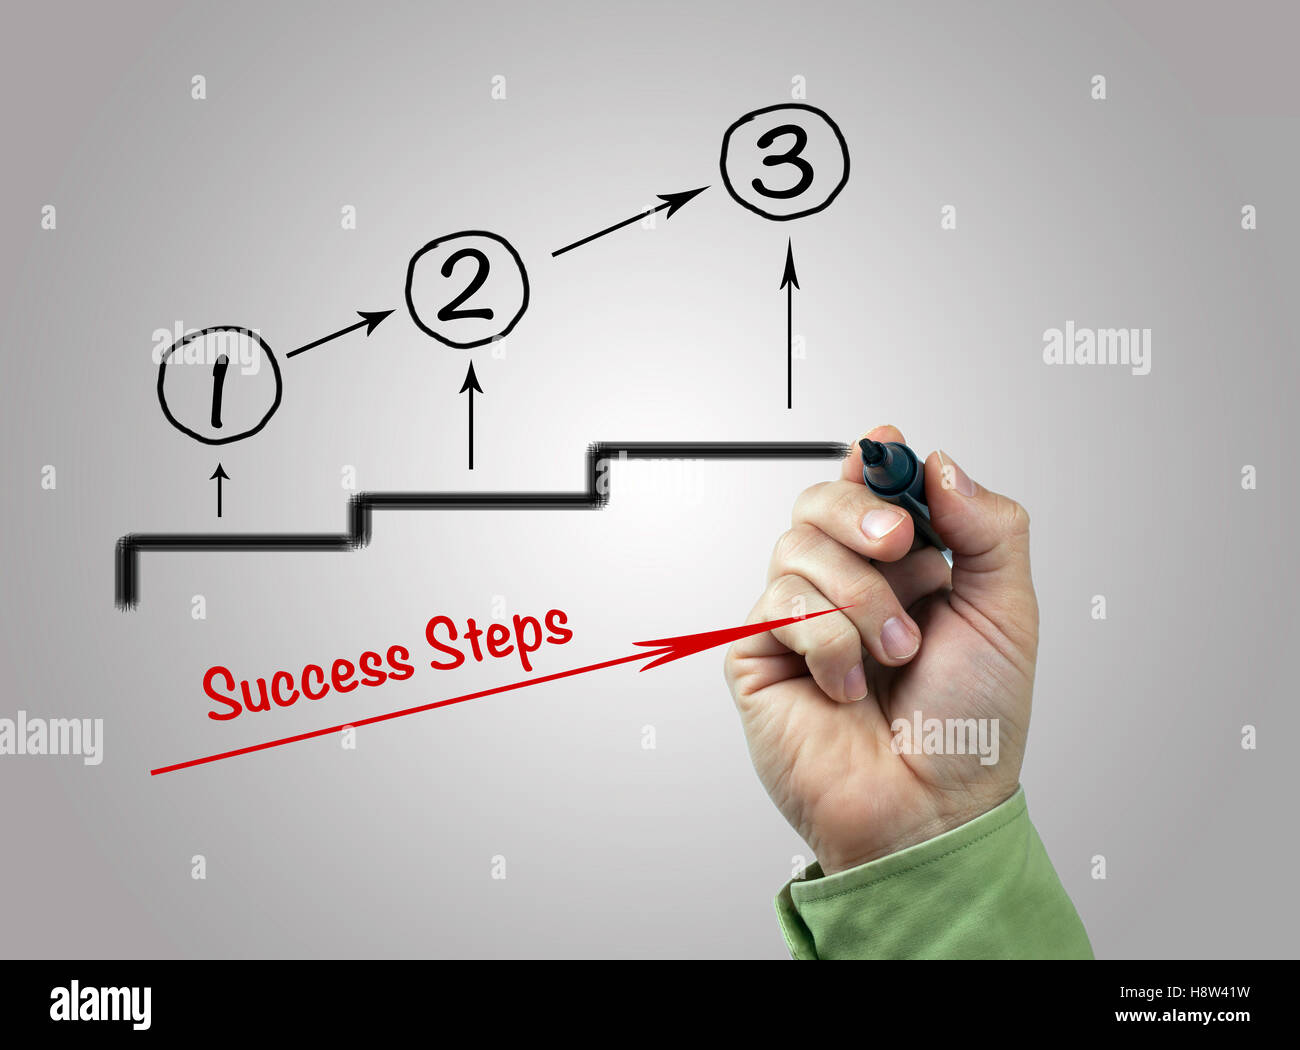 Hand with marker writing Success Steps, business concept - Stock Image